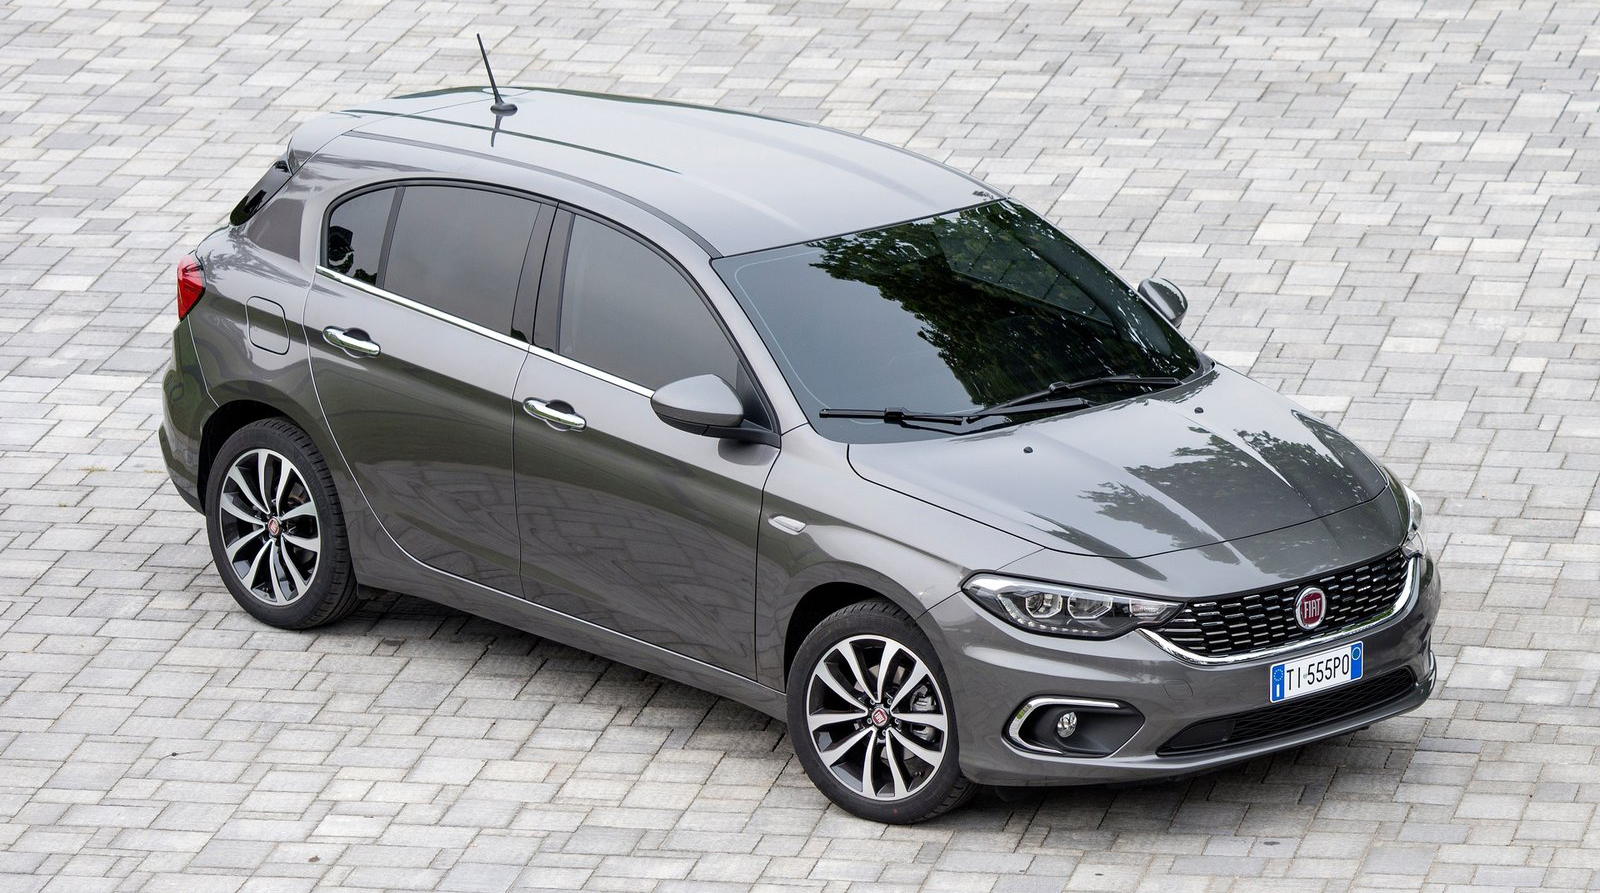 fiat tipo 5 door hatchback station wagon revealed image 487362. Black Bedroom Furniture Sets. Home Design Ideas